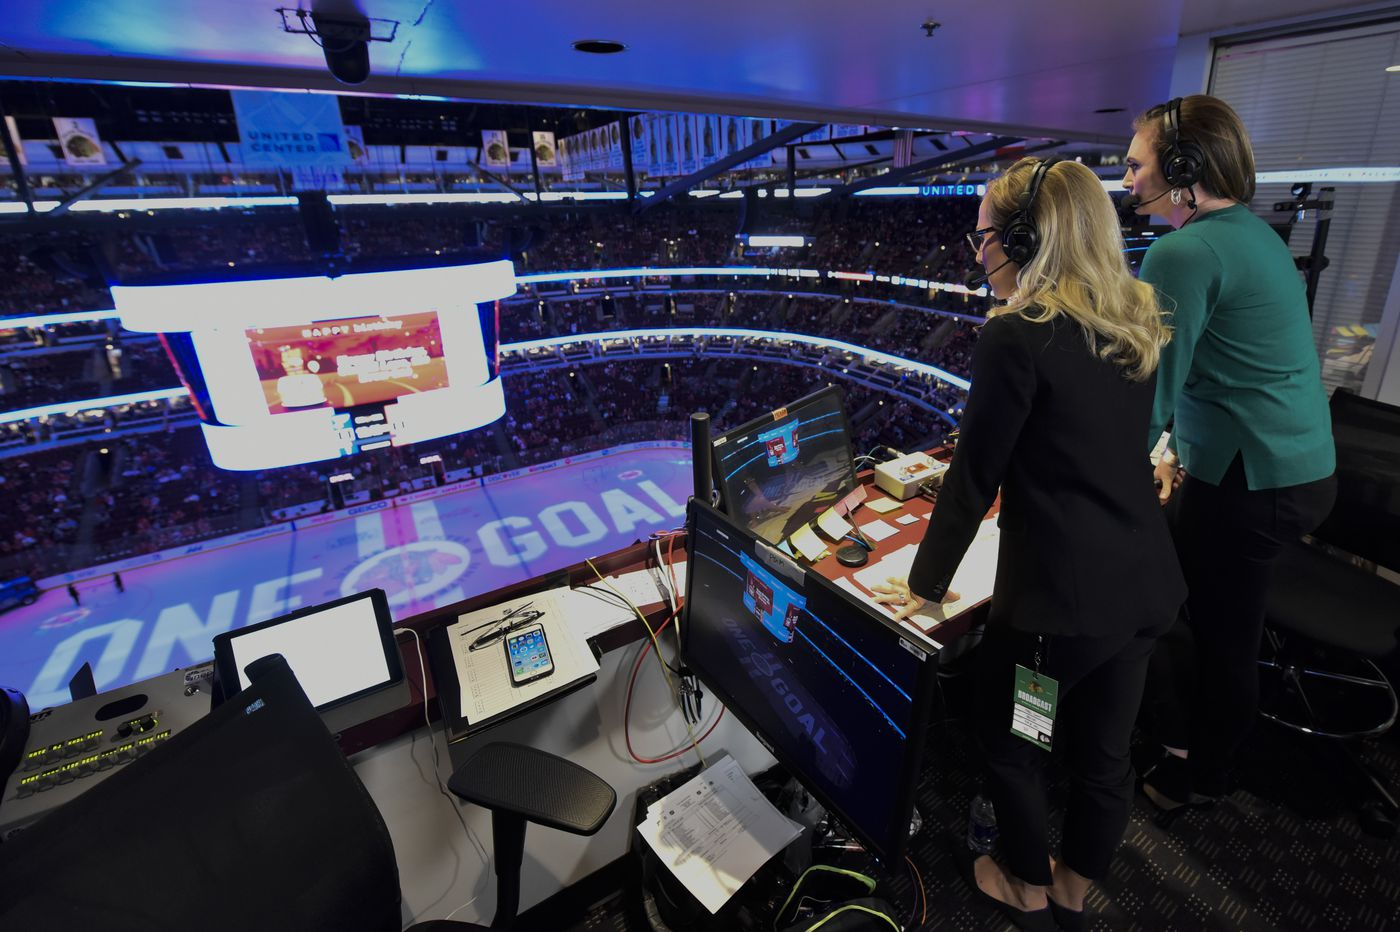 What impact will NHL's first all-women telecast have on the future of women in sports?